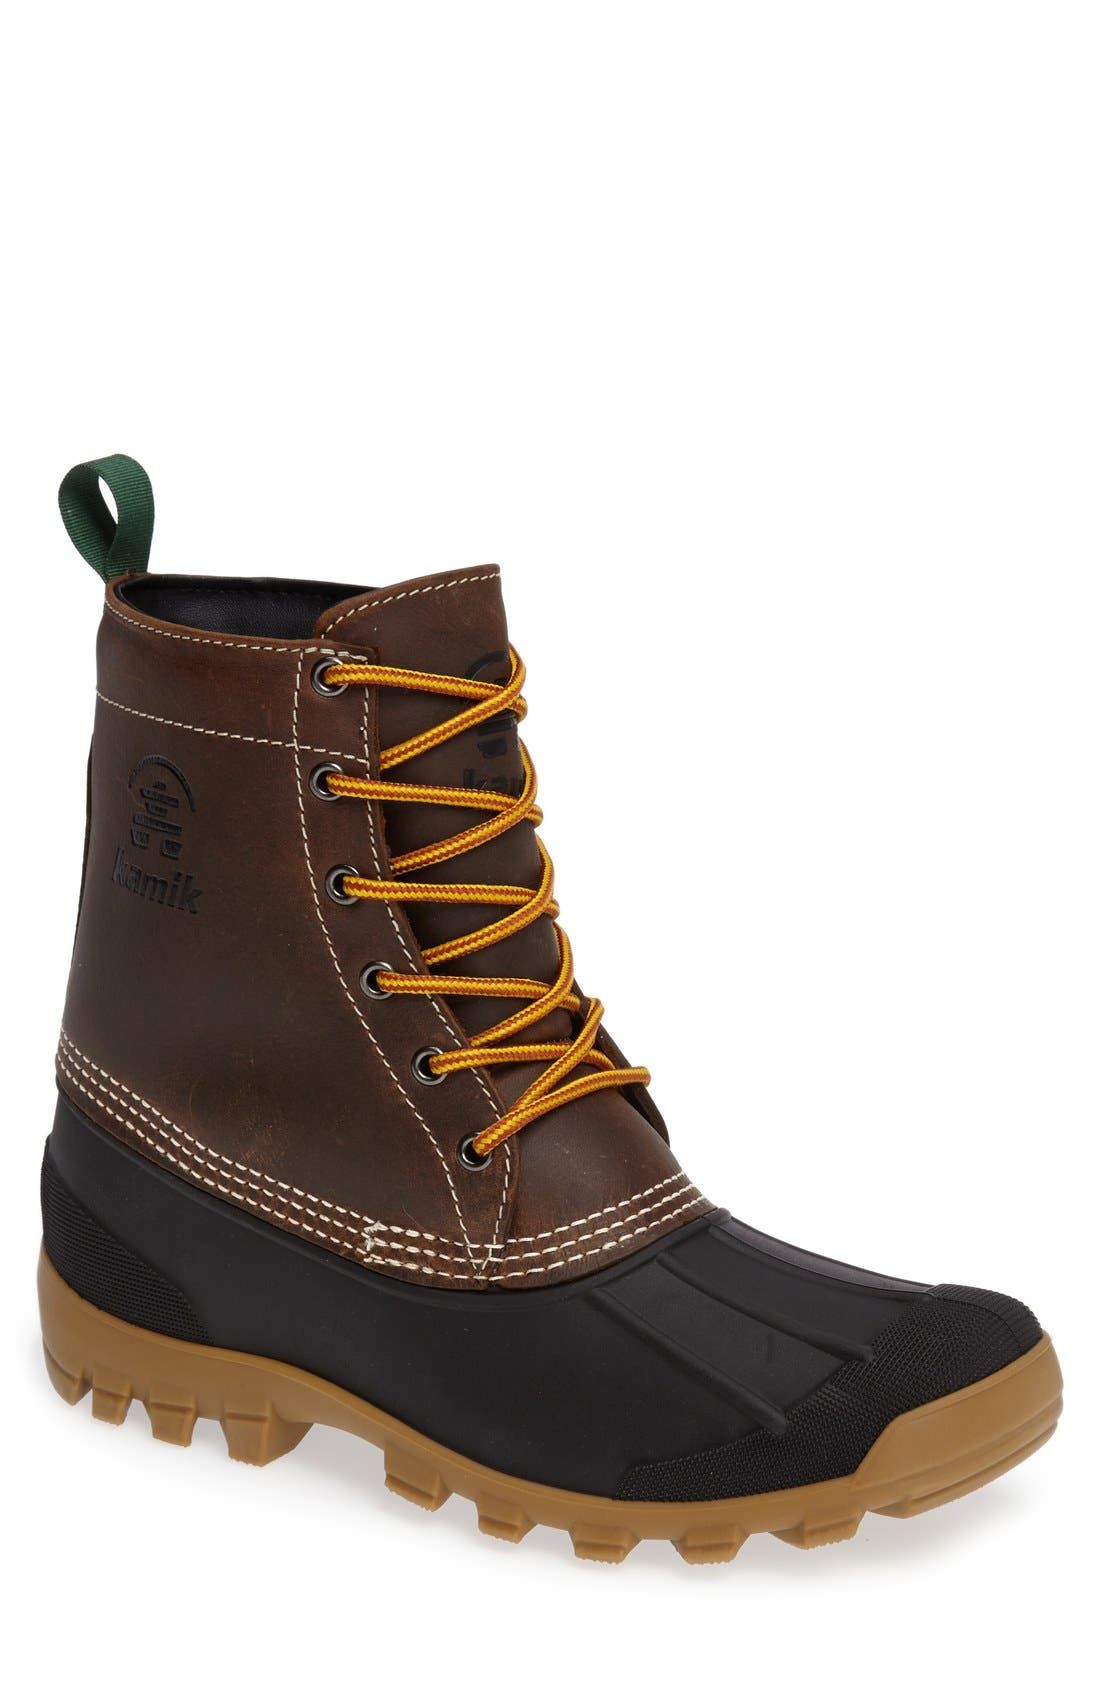 Yukon6 Waterproof Work Boot,                             Main thumbnail 1, color,                             DARK BROWN LEATHER